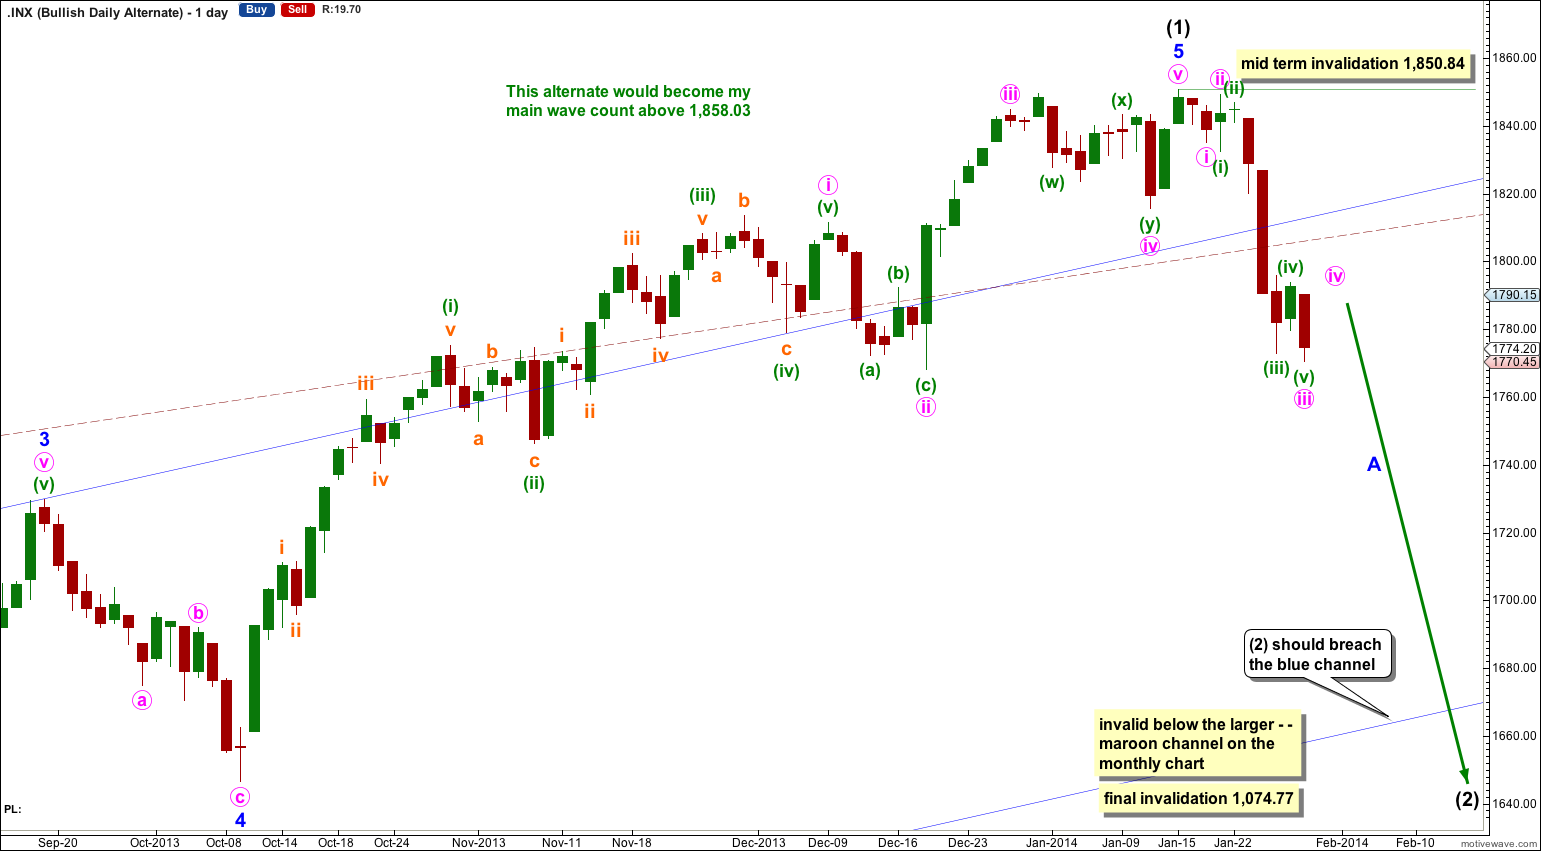 S&P 500 daily alternate bullish 2013